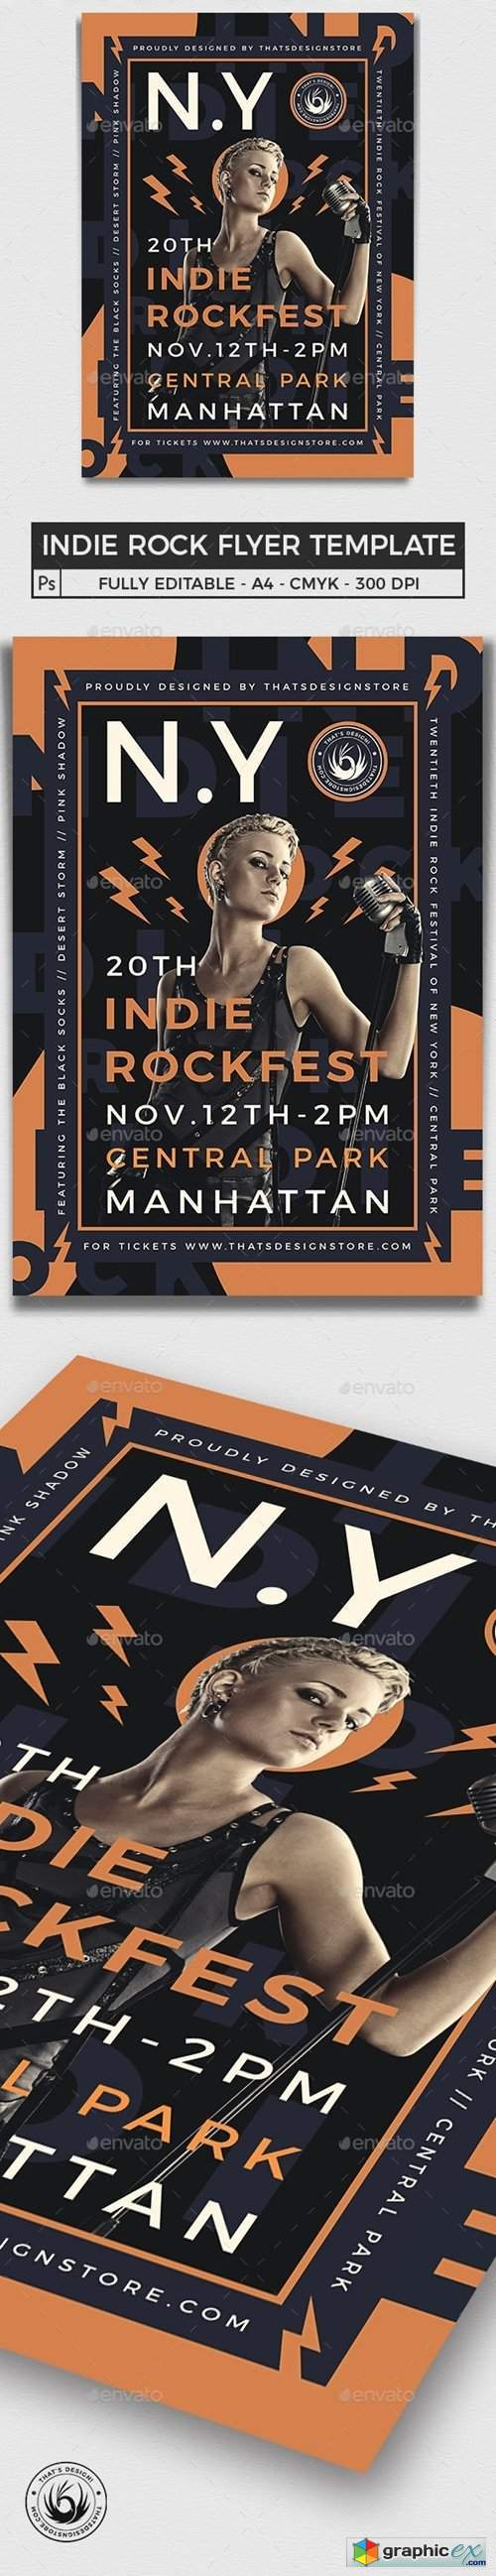 Indie Rock Flyer Template V7